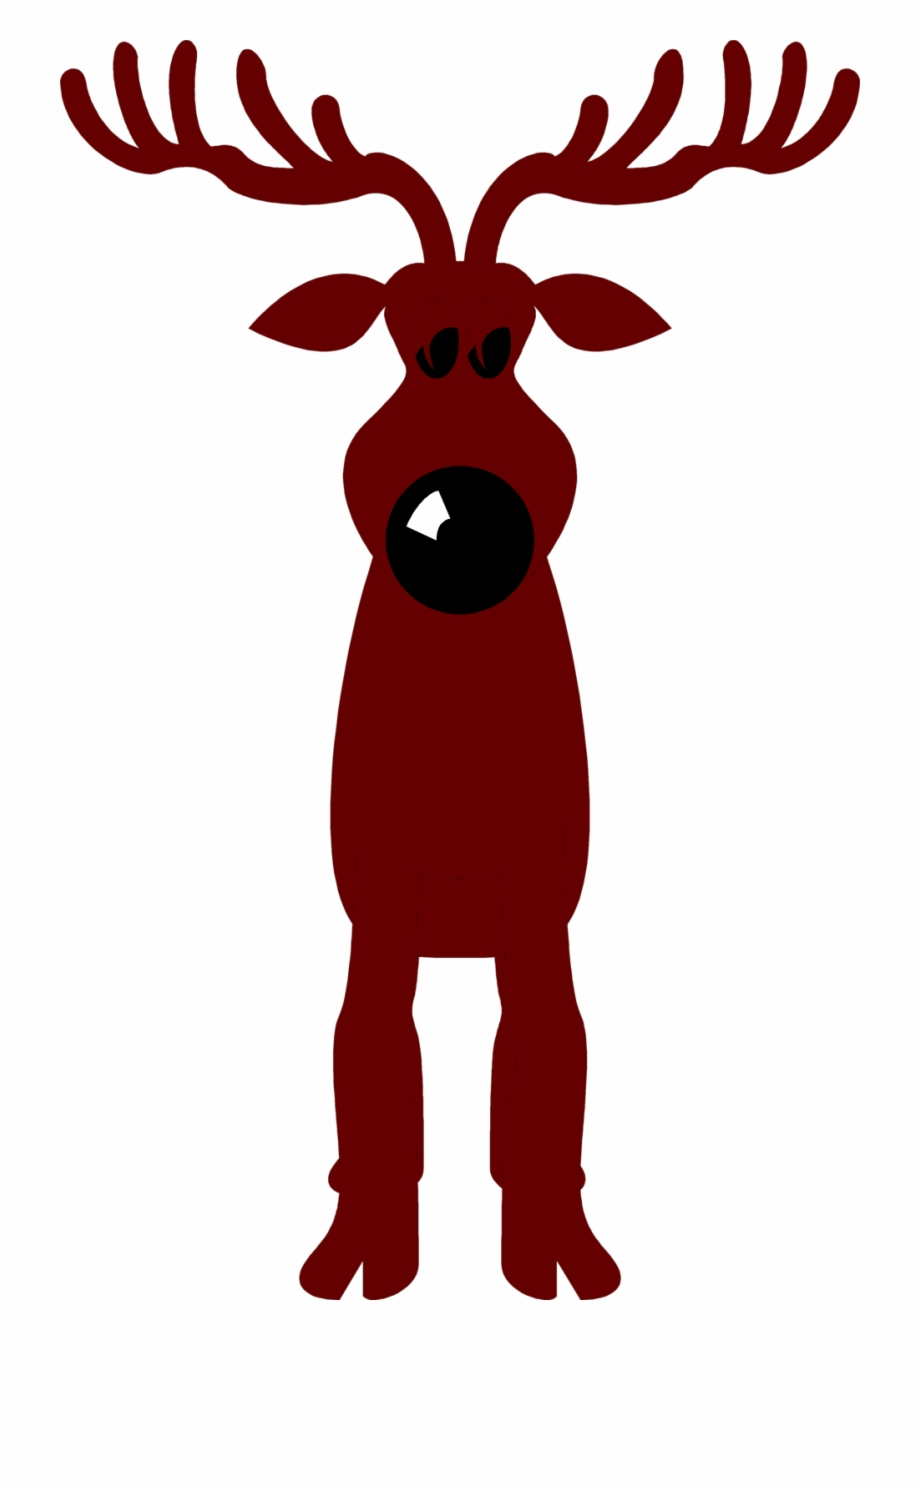 Silhouette clipart rudolph red nosed reindeer png royalty free download Deer Clipart Nose - Rudolph The Red Nosed Reindeer Free PNG ... png royalty free download